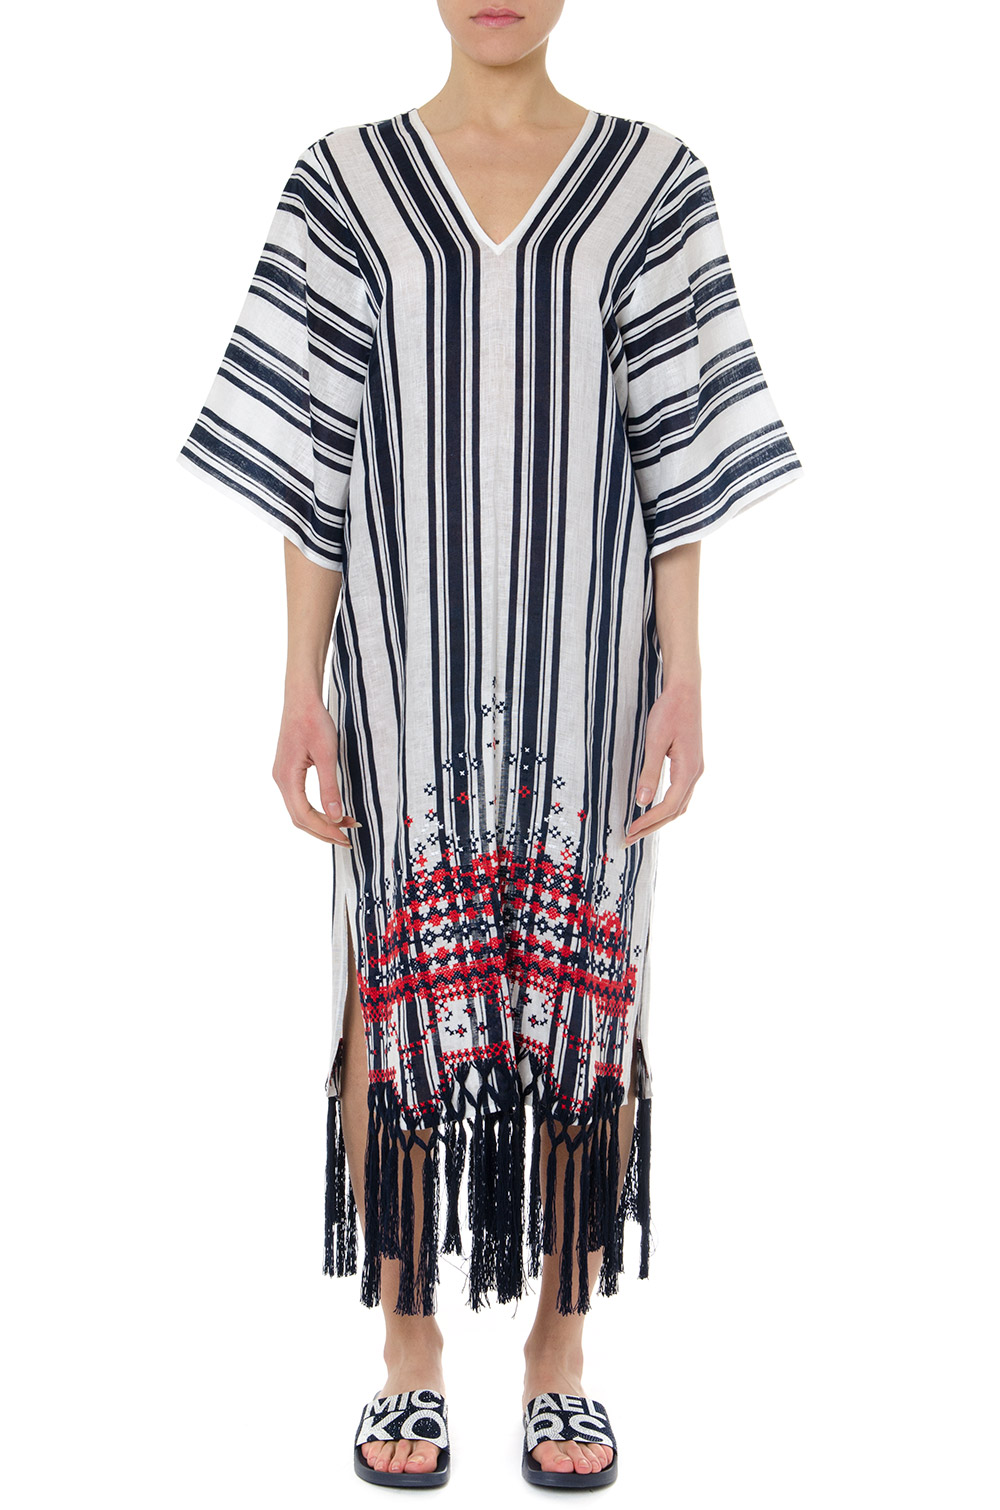 805eed2c2ef1 AWNING LINEN WHITE & BLUE STRIPED CAFTAN SS19 - TORY BURCH - Boutique  Galiano